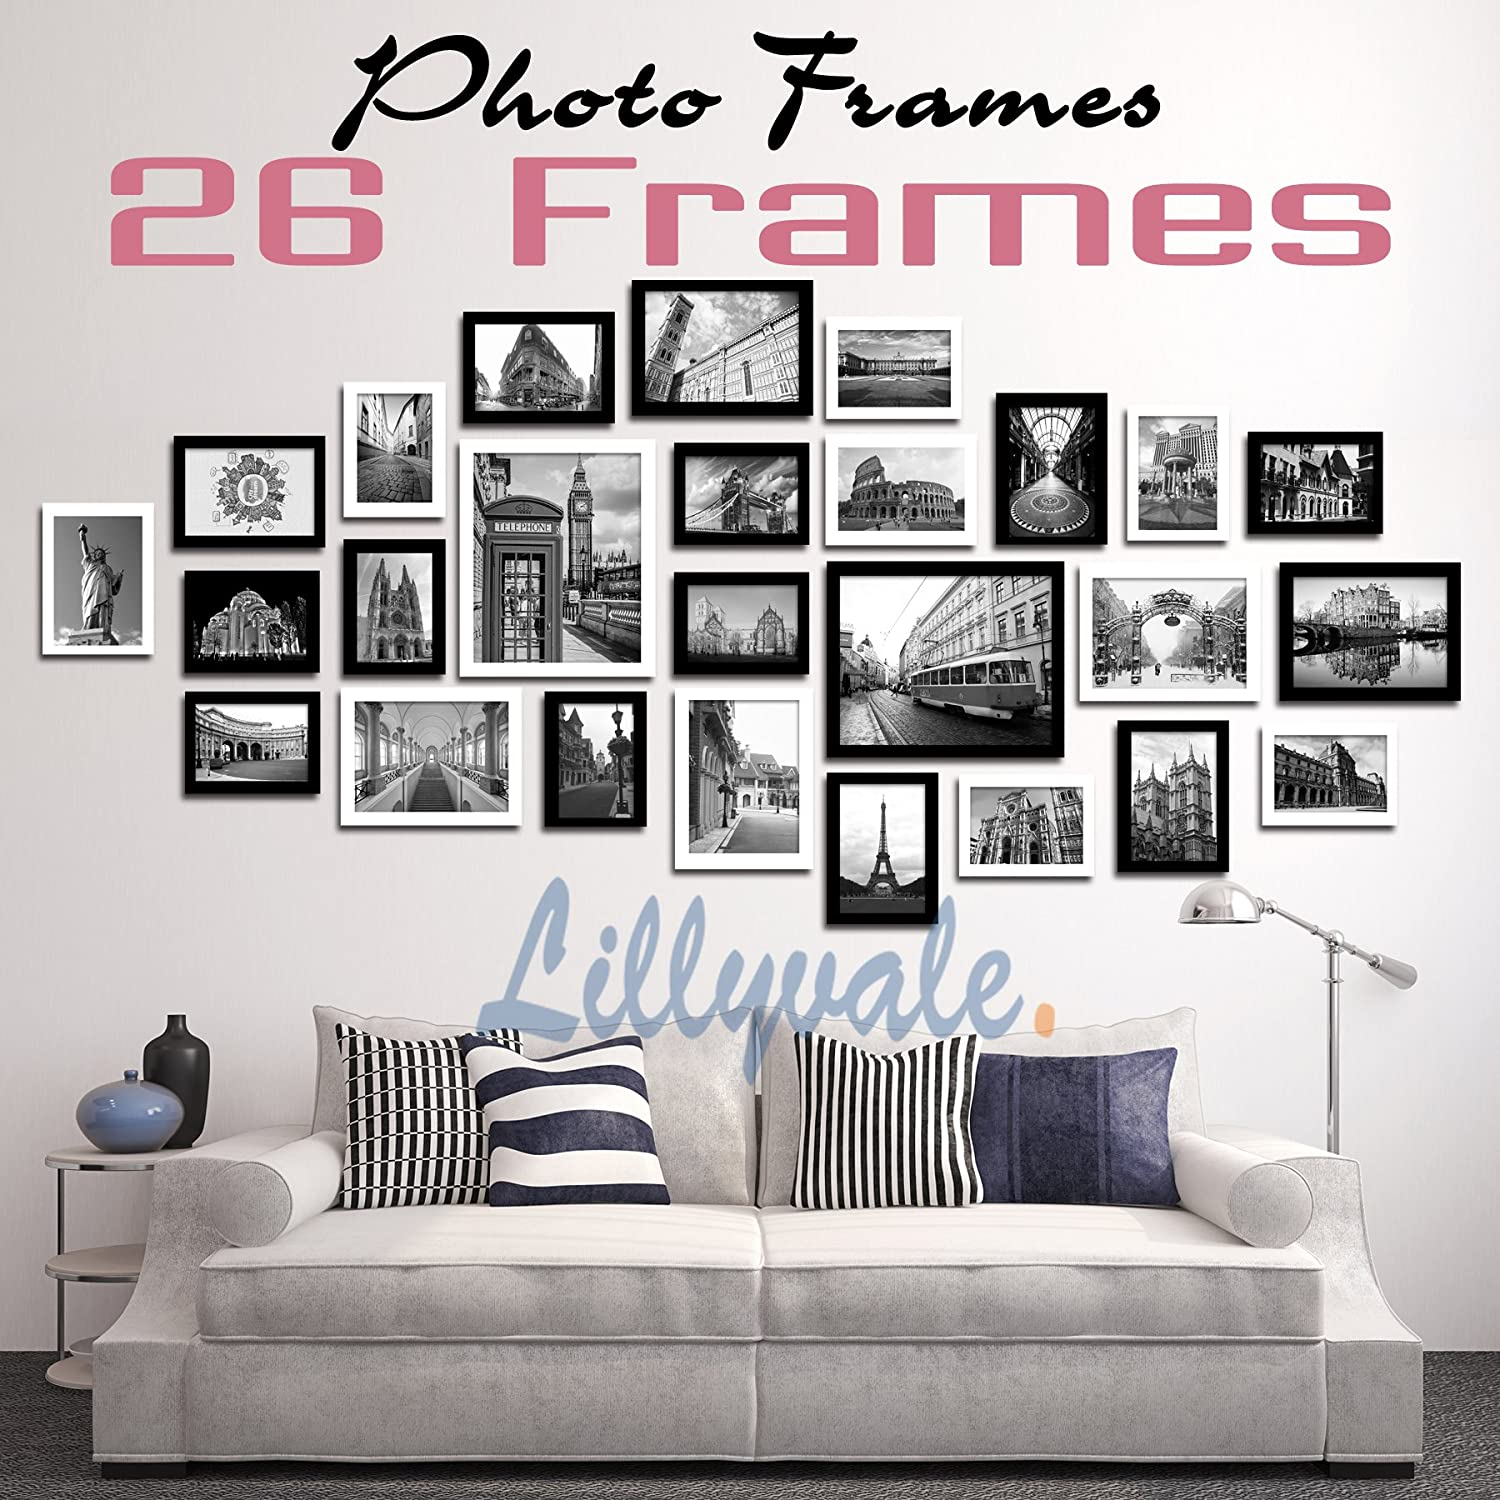 Large multi picture photo frames wall set 26 pieces set white and large multi picture photo frames wall set 26 pieces set white and black amazon kitchen home jeuxipadfo Images